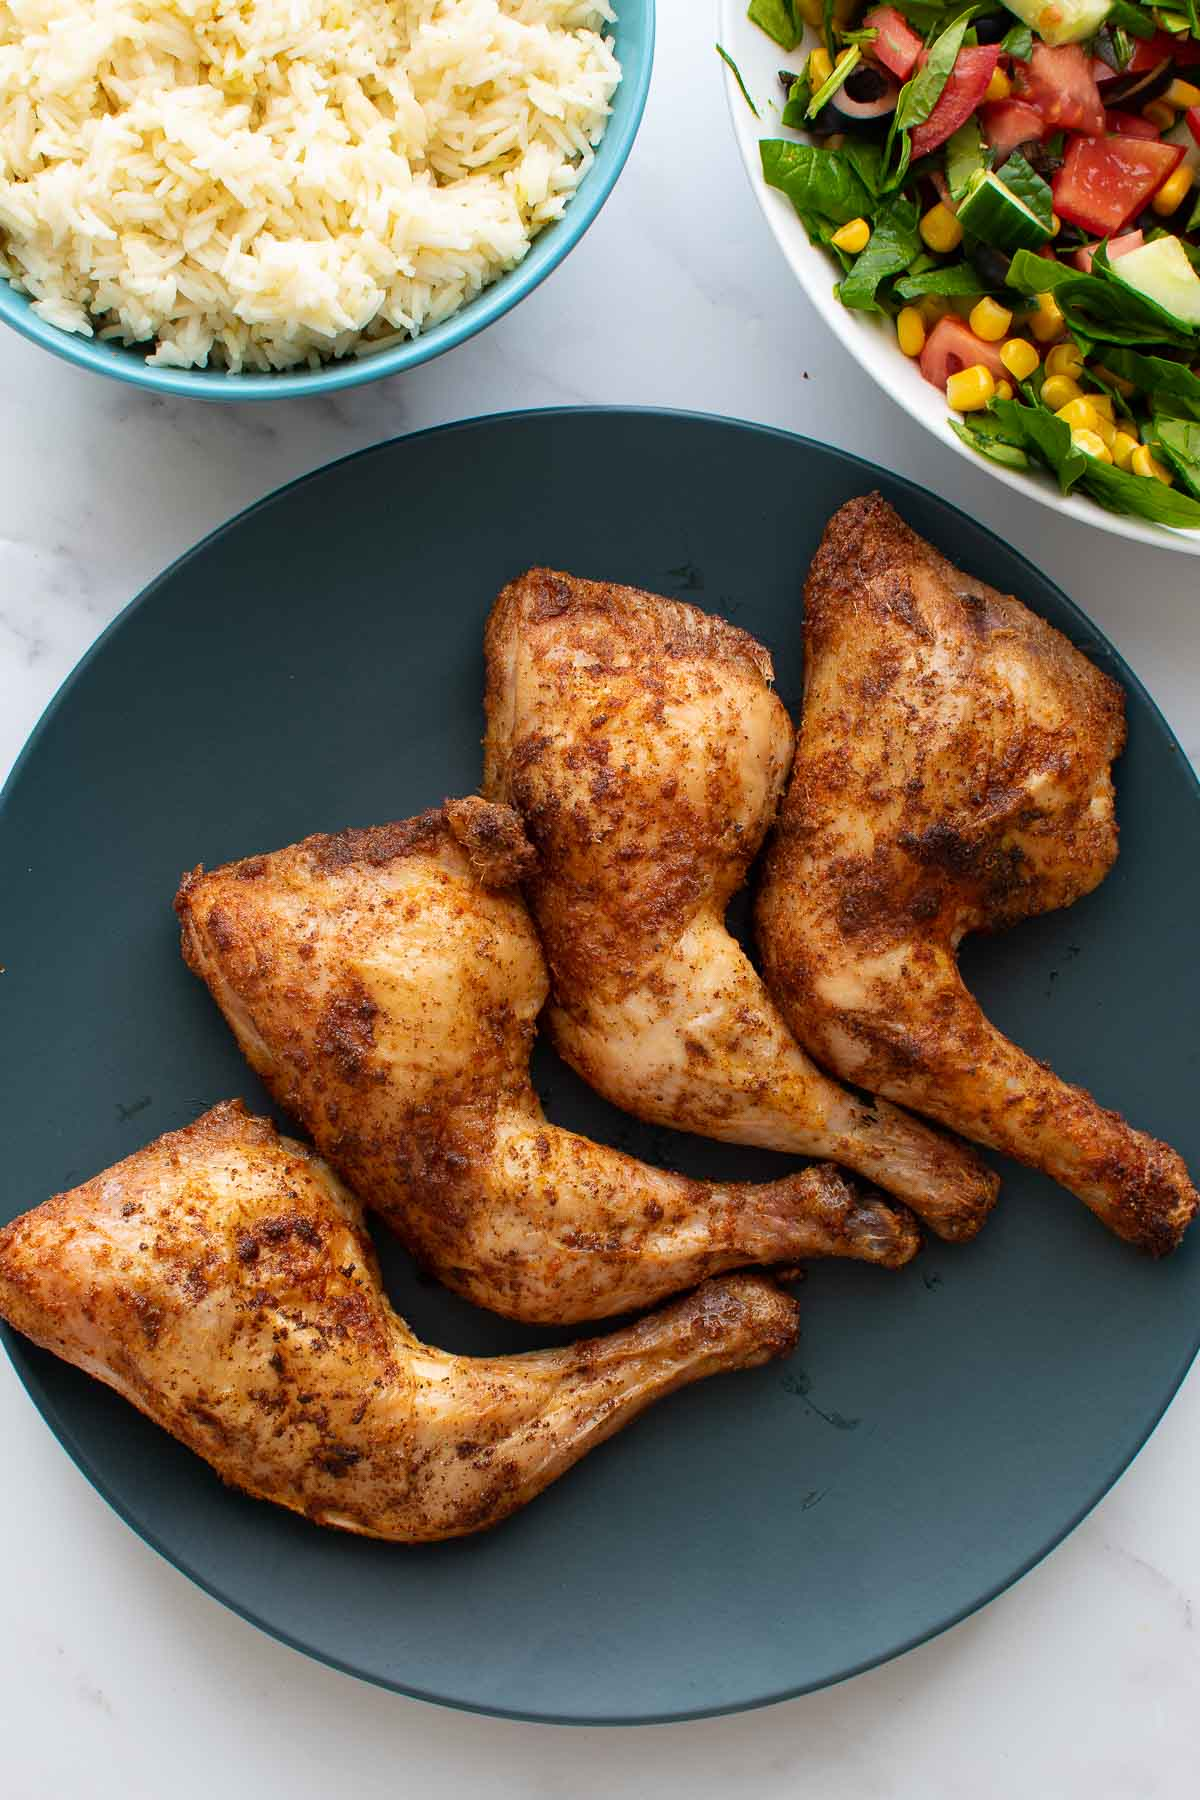 A plate of baked chicken leg quarters, with rice and salad on the side.